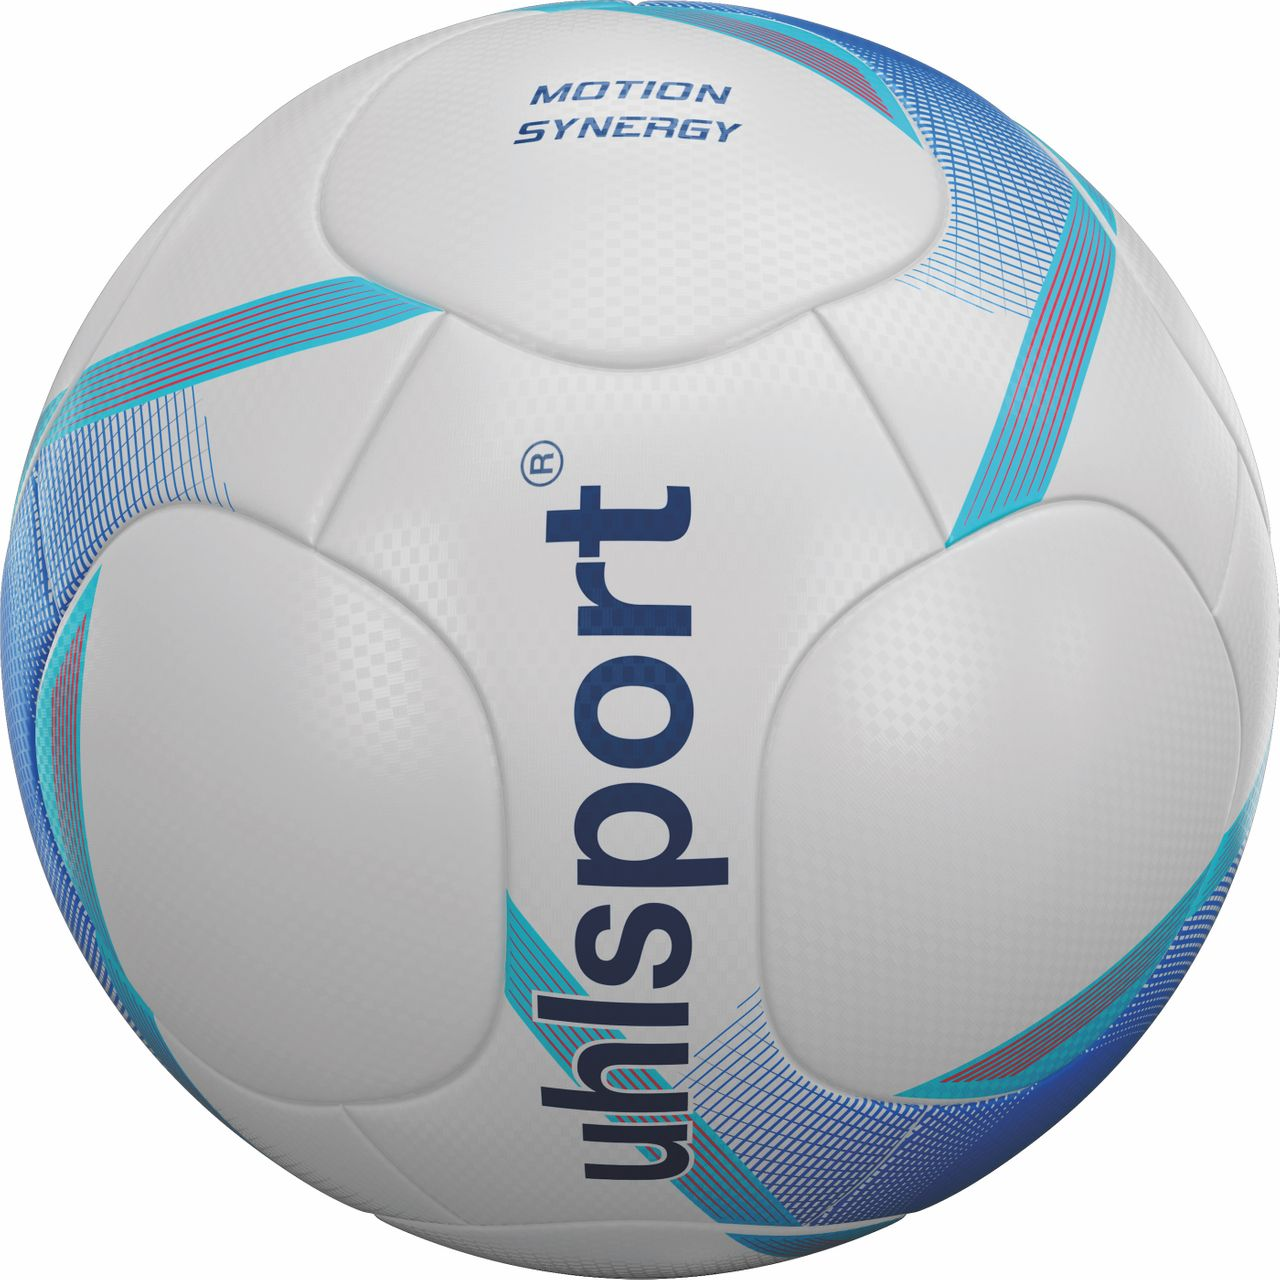 Uhlsport Trainingsball MOTION SYNERGY